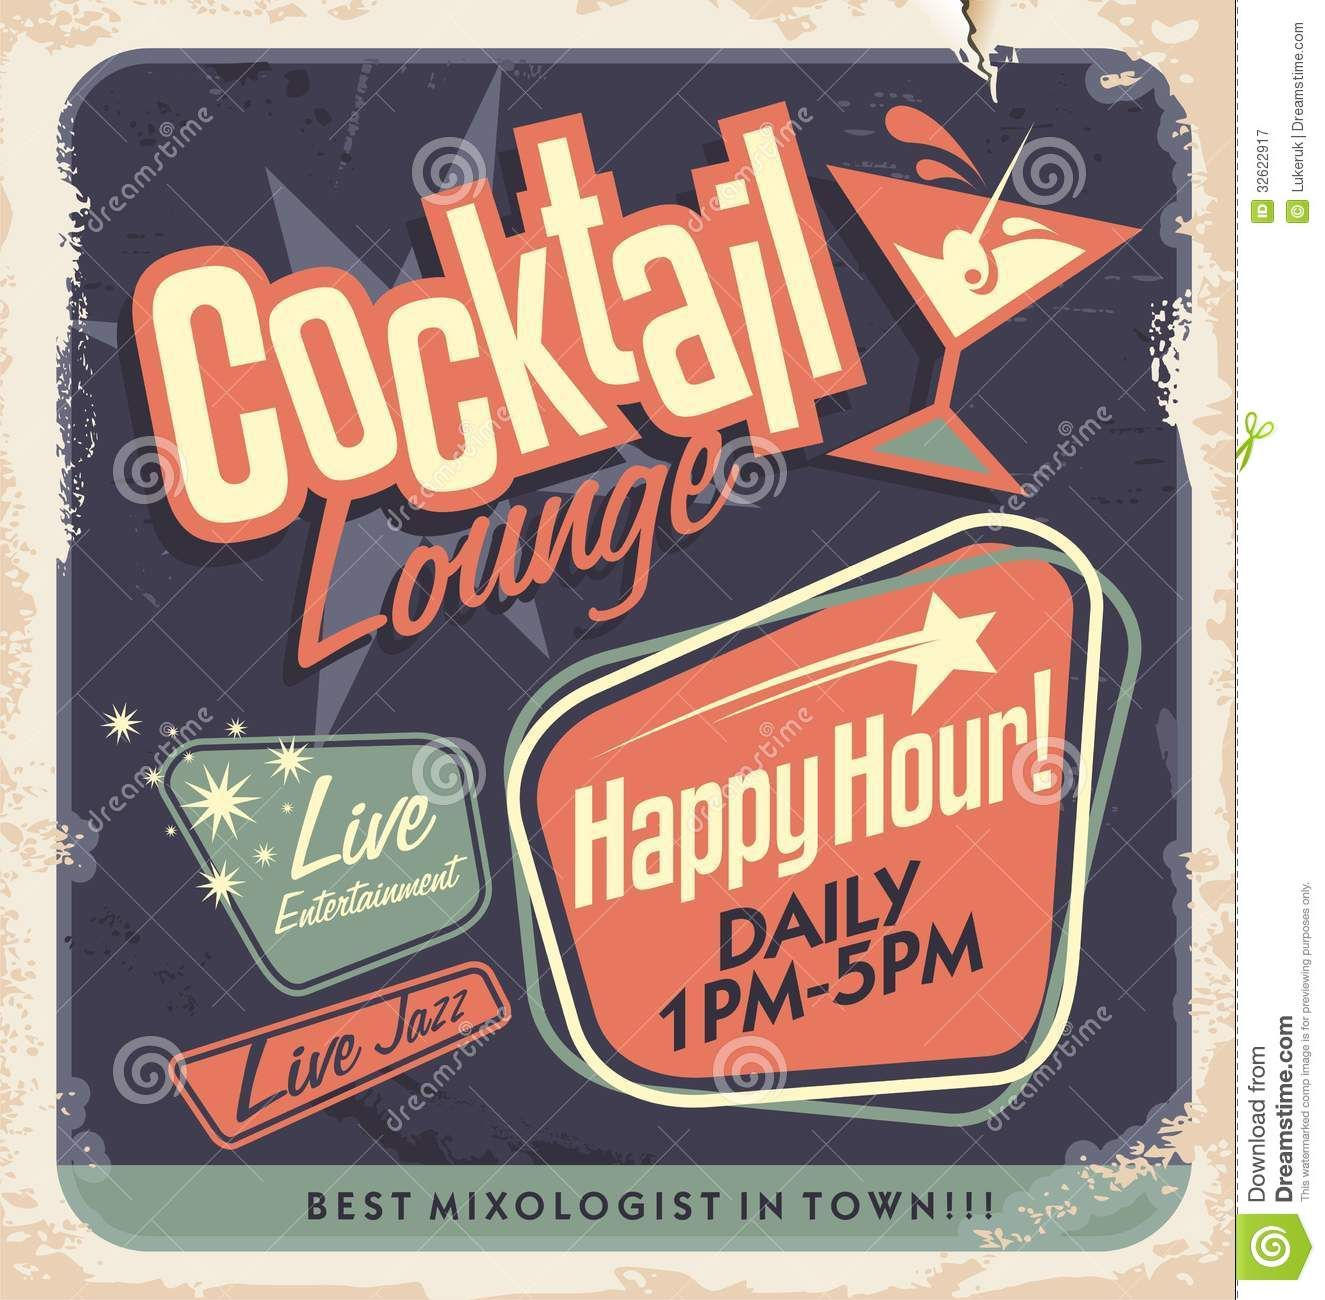 Poster design vector download - Retro Poster Design Cocktail Lounge Party Vector Concept